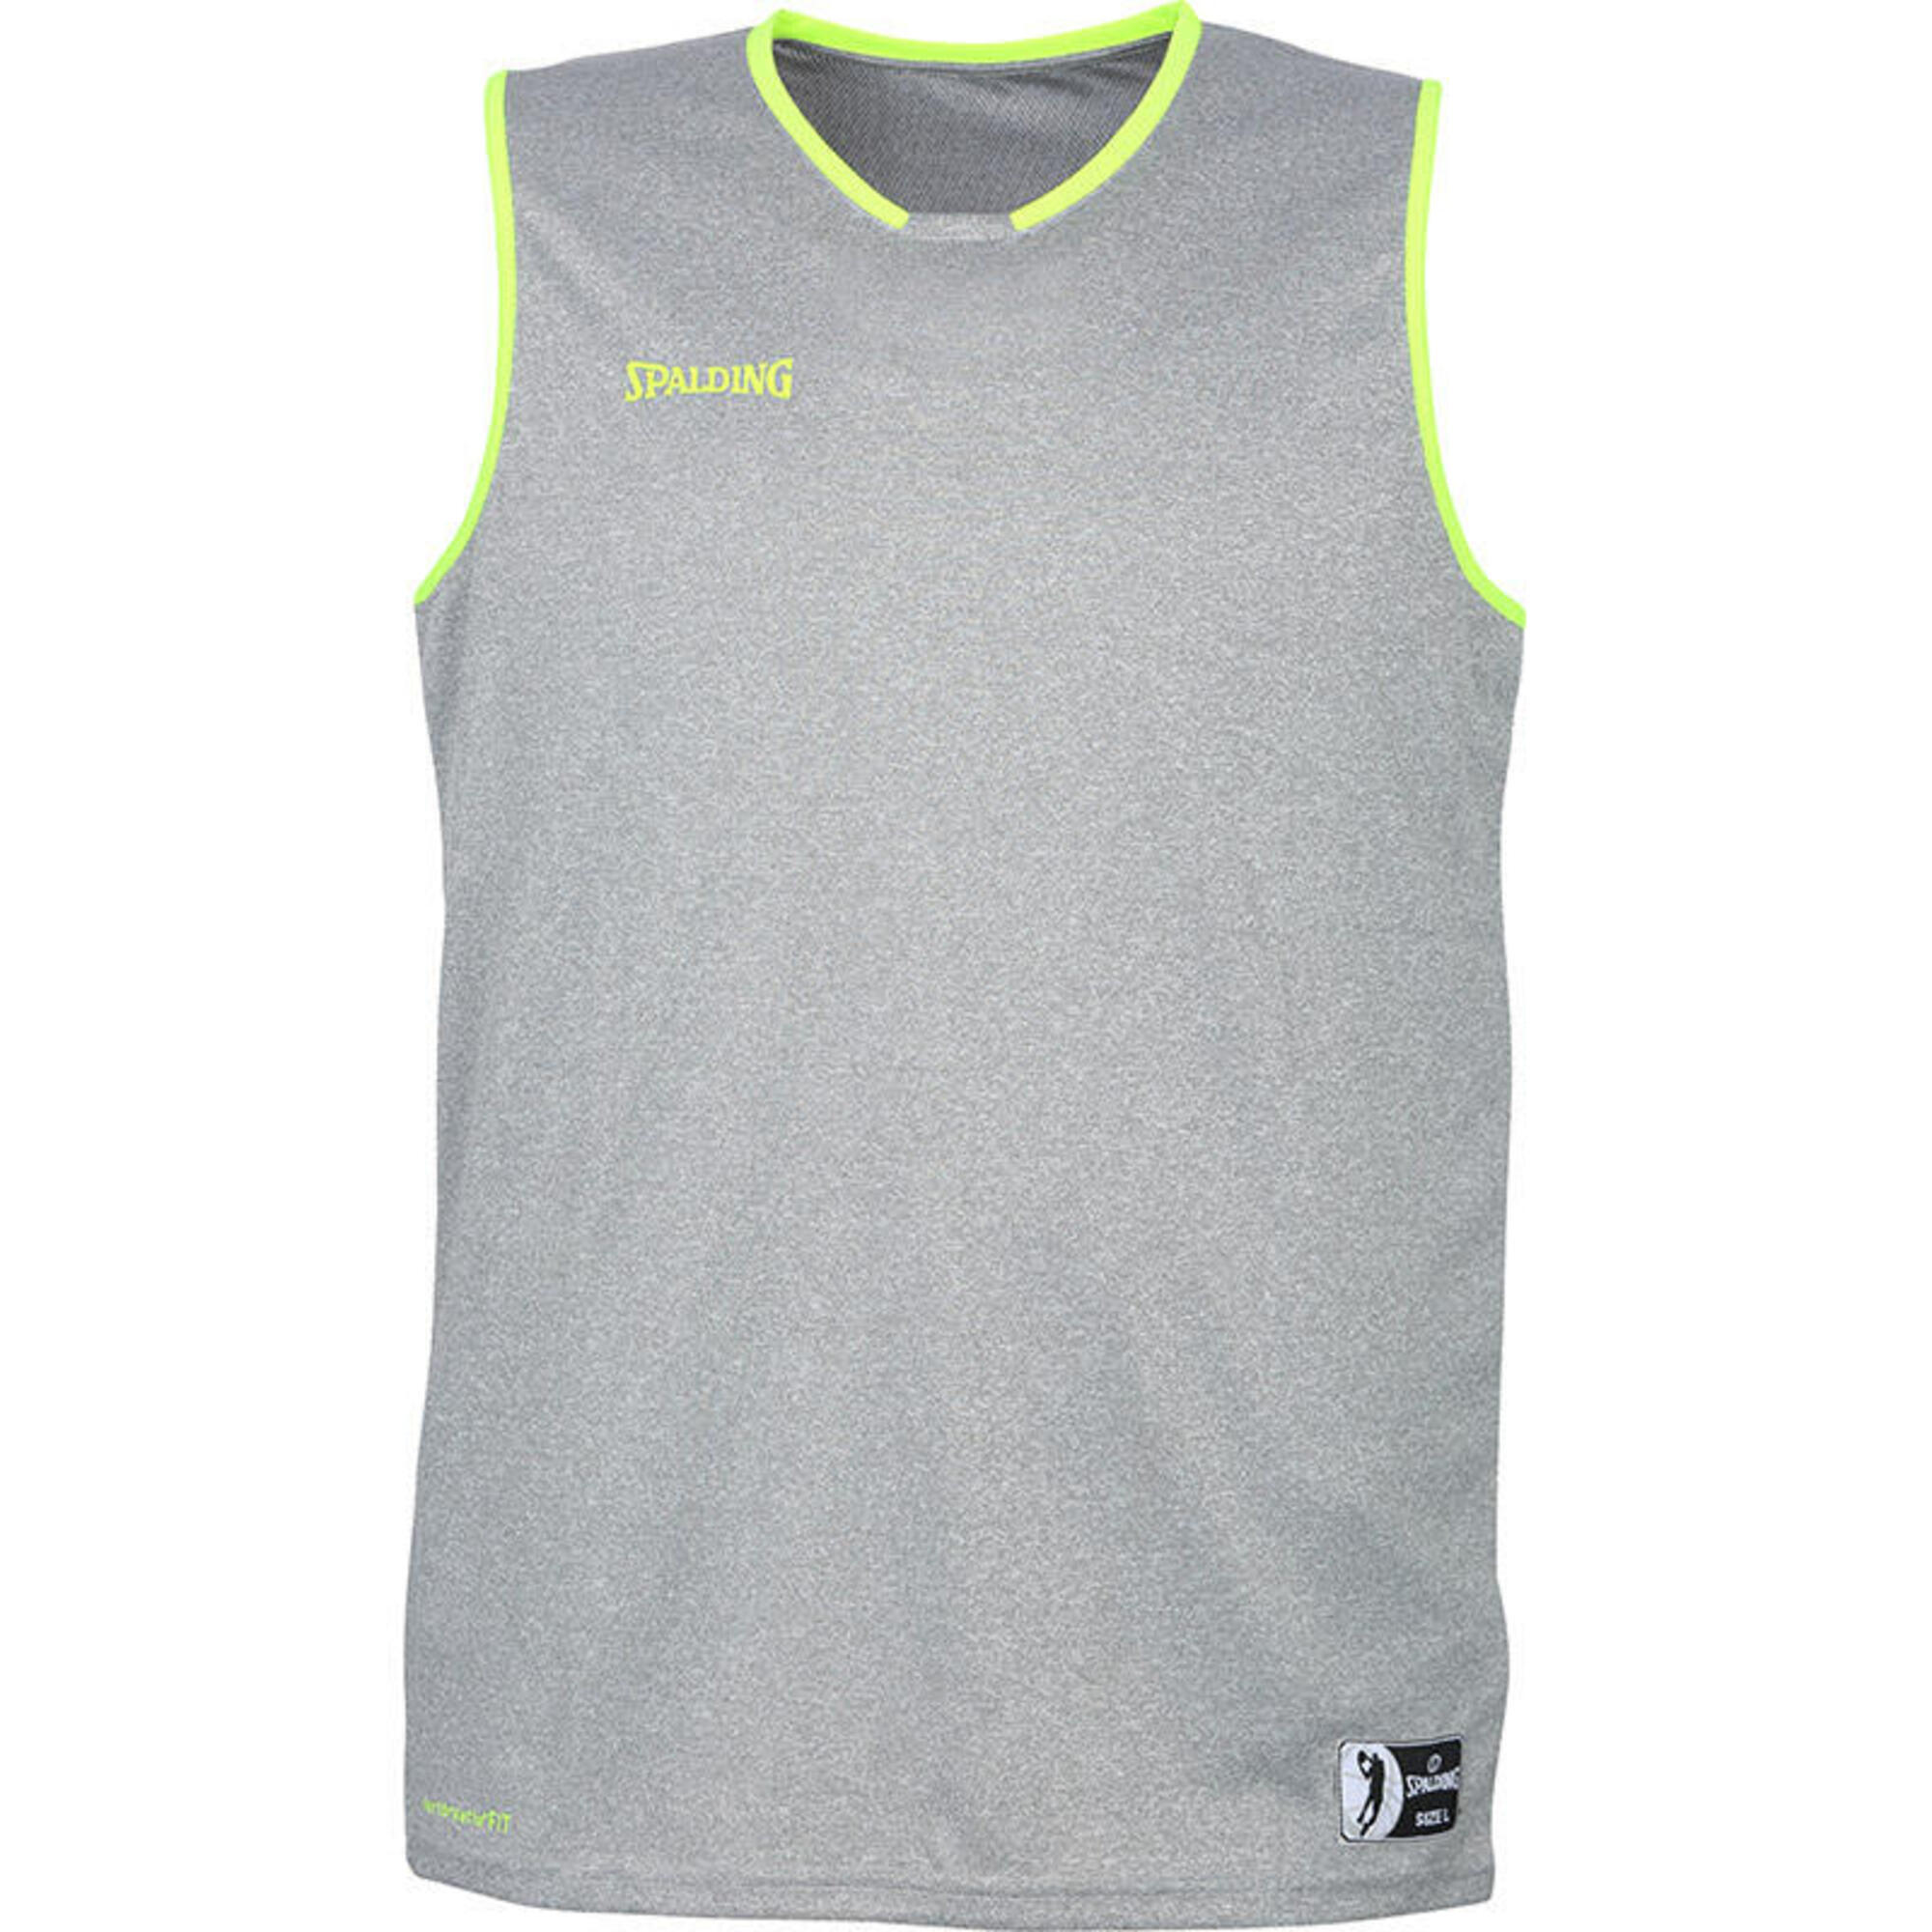 Maillot Spalding Move